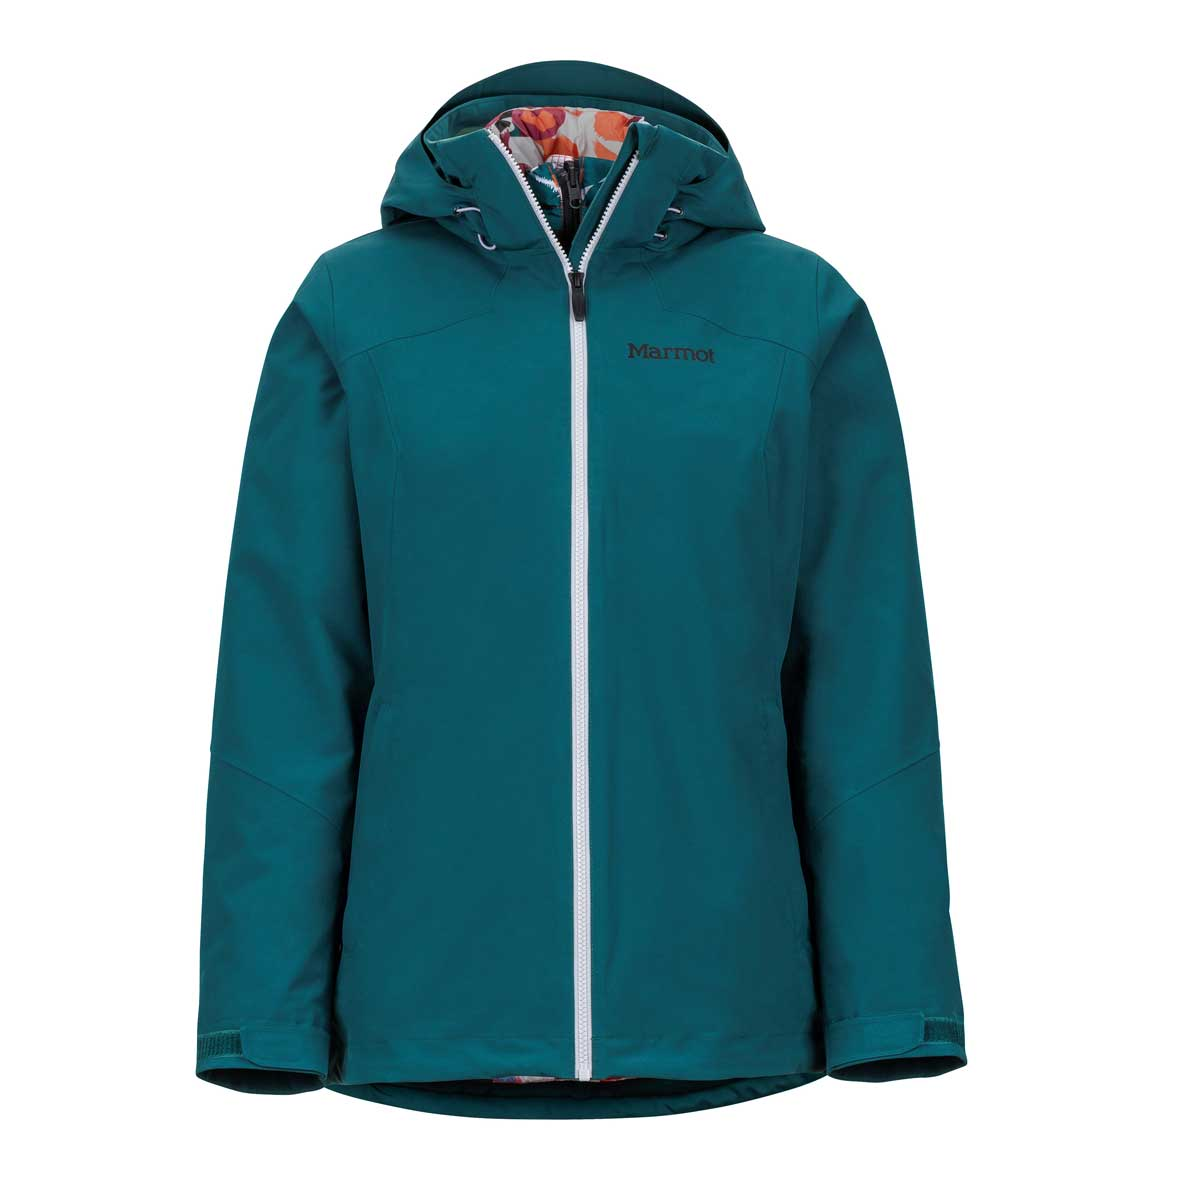 Marmot Women's Featherless Component Jacket in Deep Teal